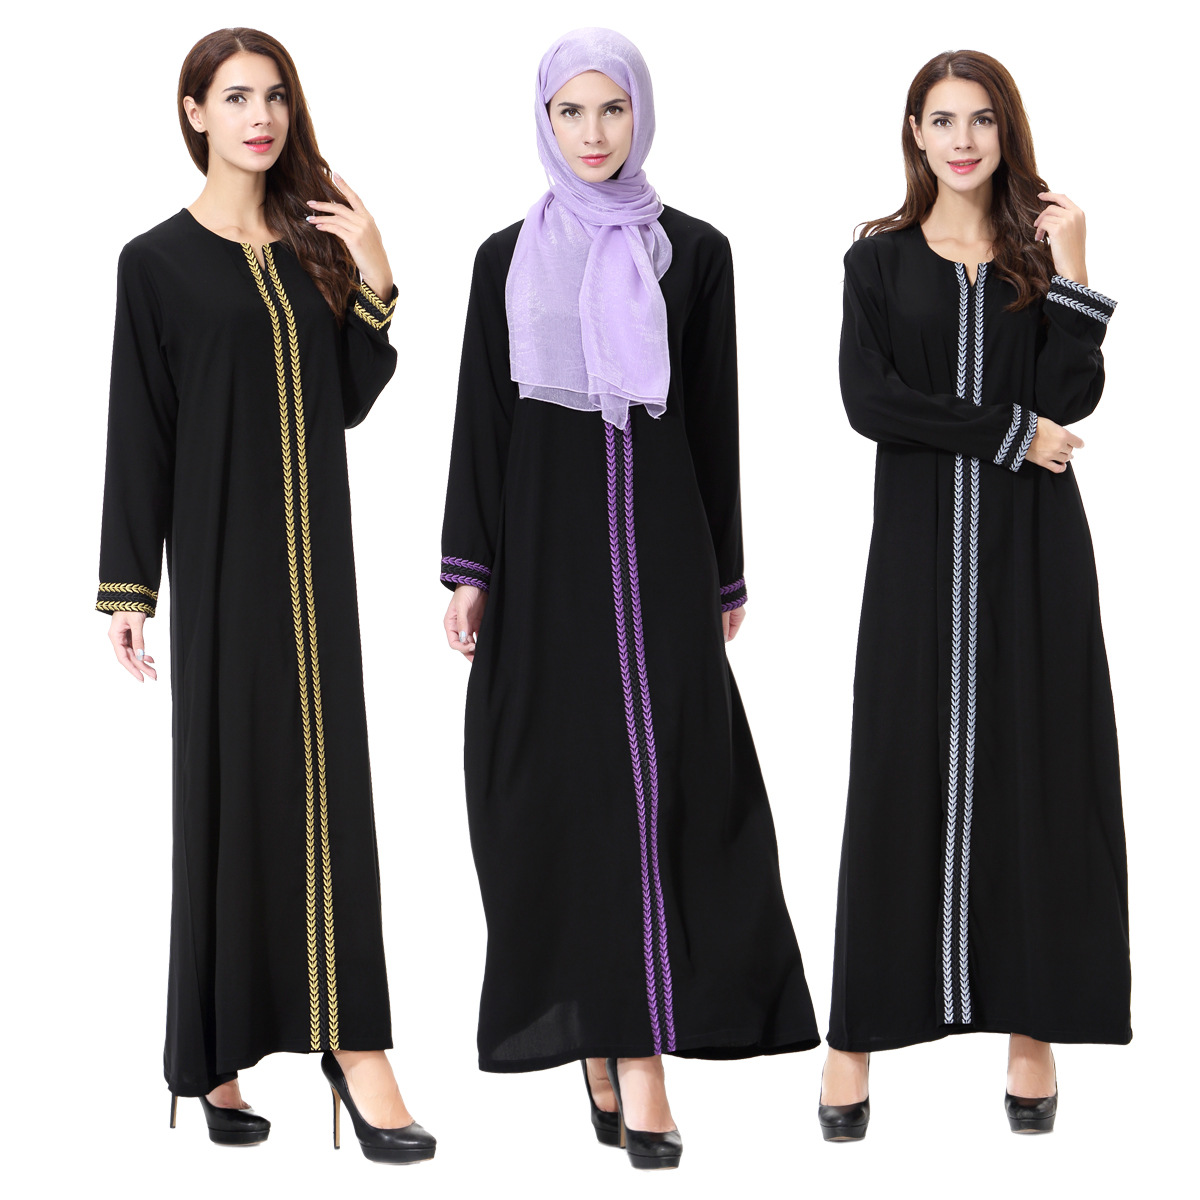 New Abayas for Women Muslim Dress islamic Clothing Dress Long Sleeve Robe  Muslim Islamic Dresses  Dubai Abaya Dresses